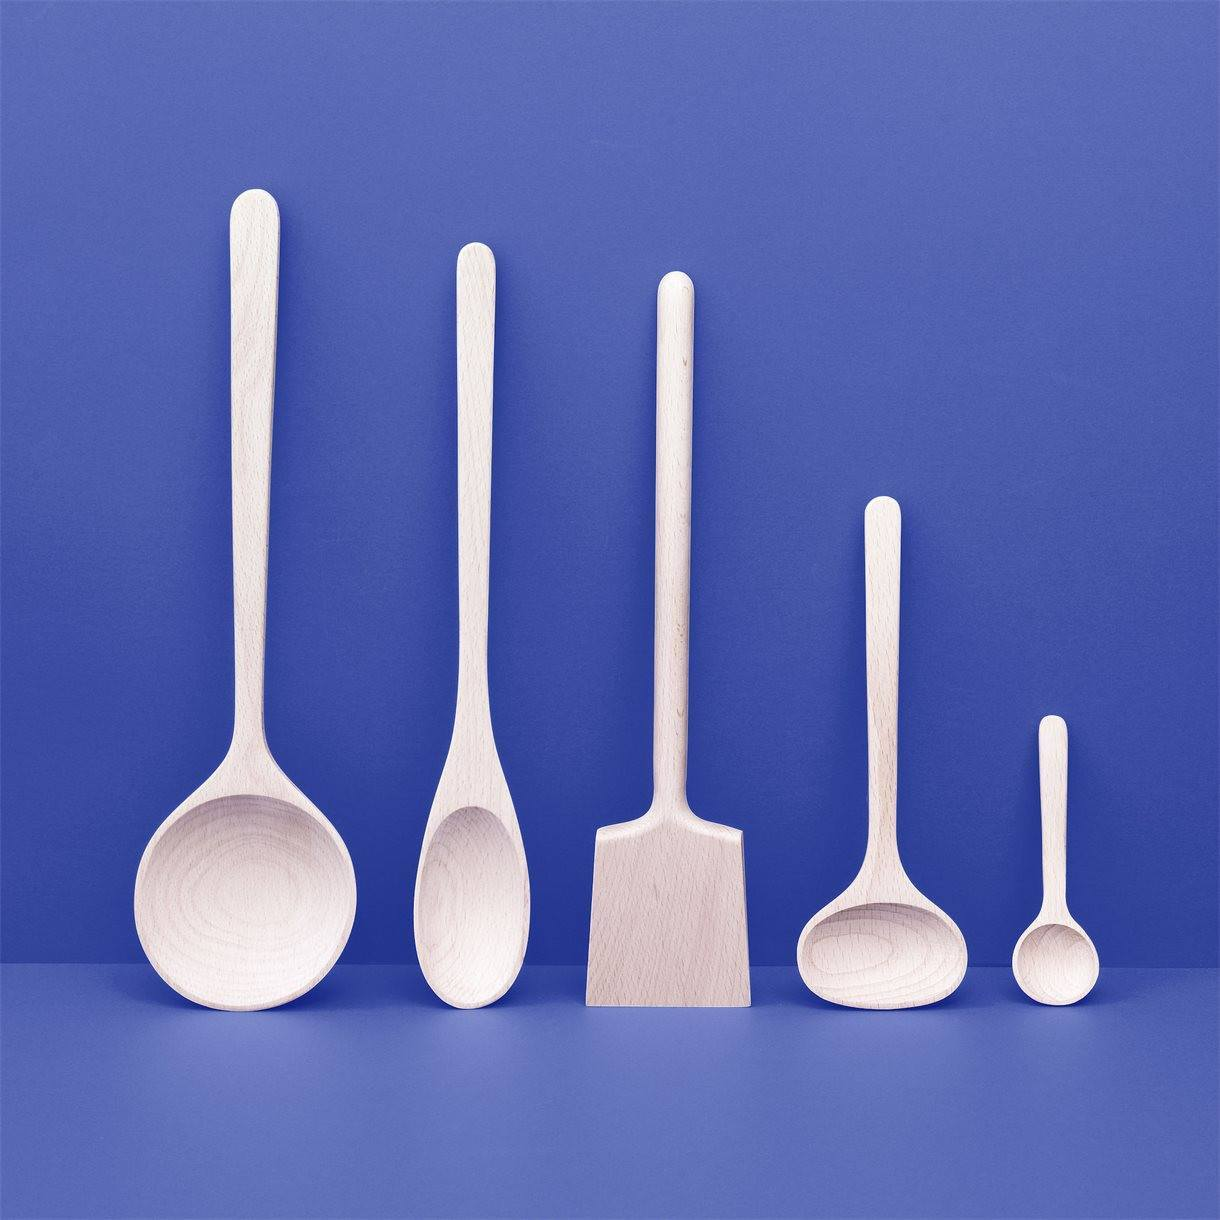 HAY EVERYDAY OBJECTS CUTLERY - Eclectic Cool